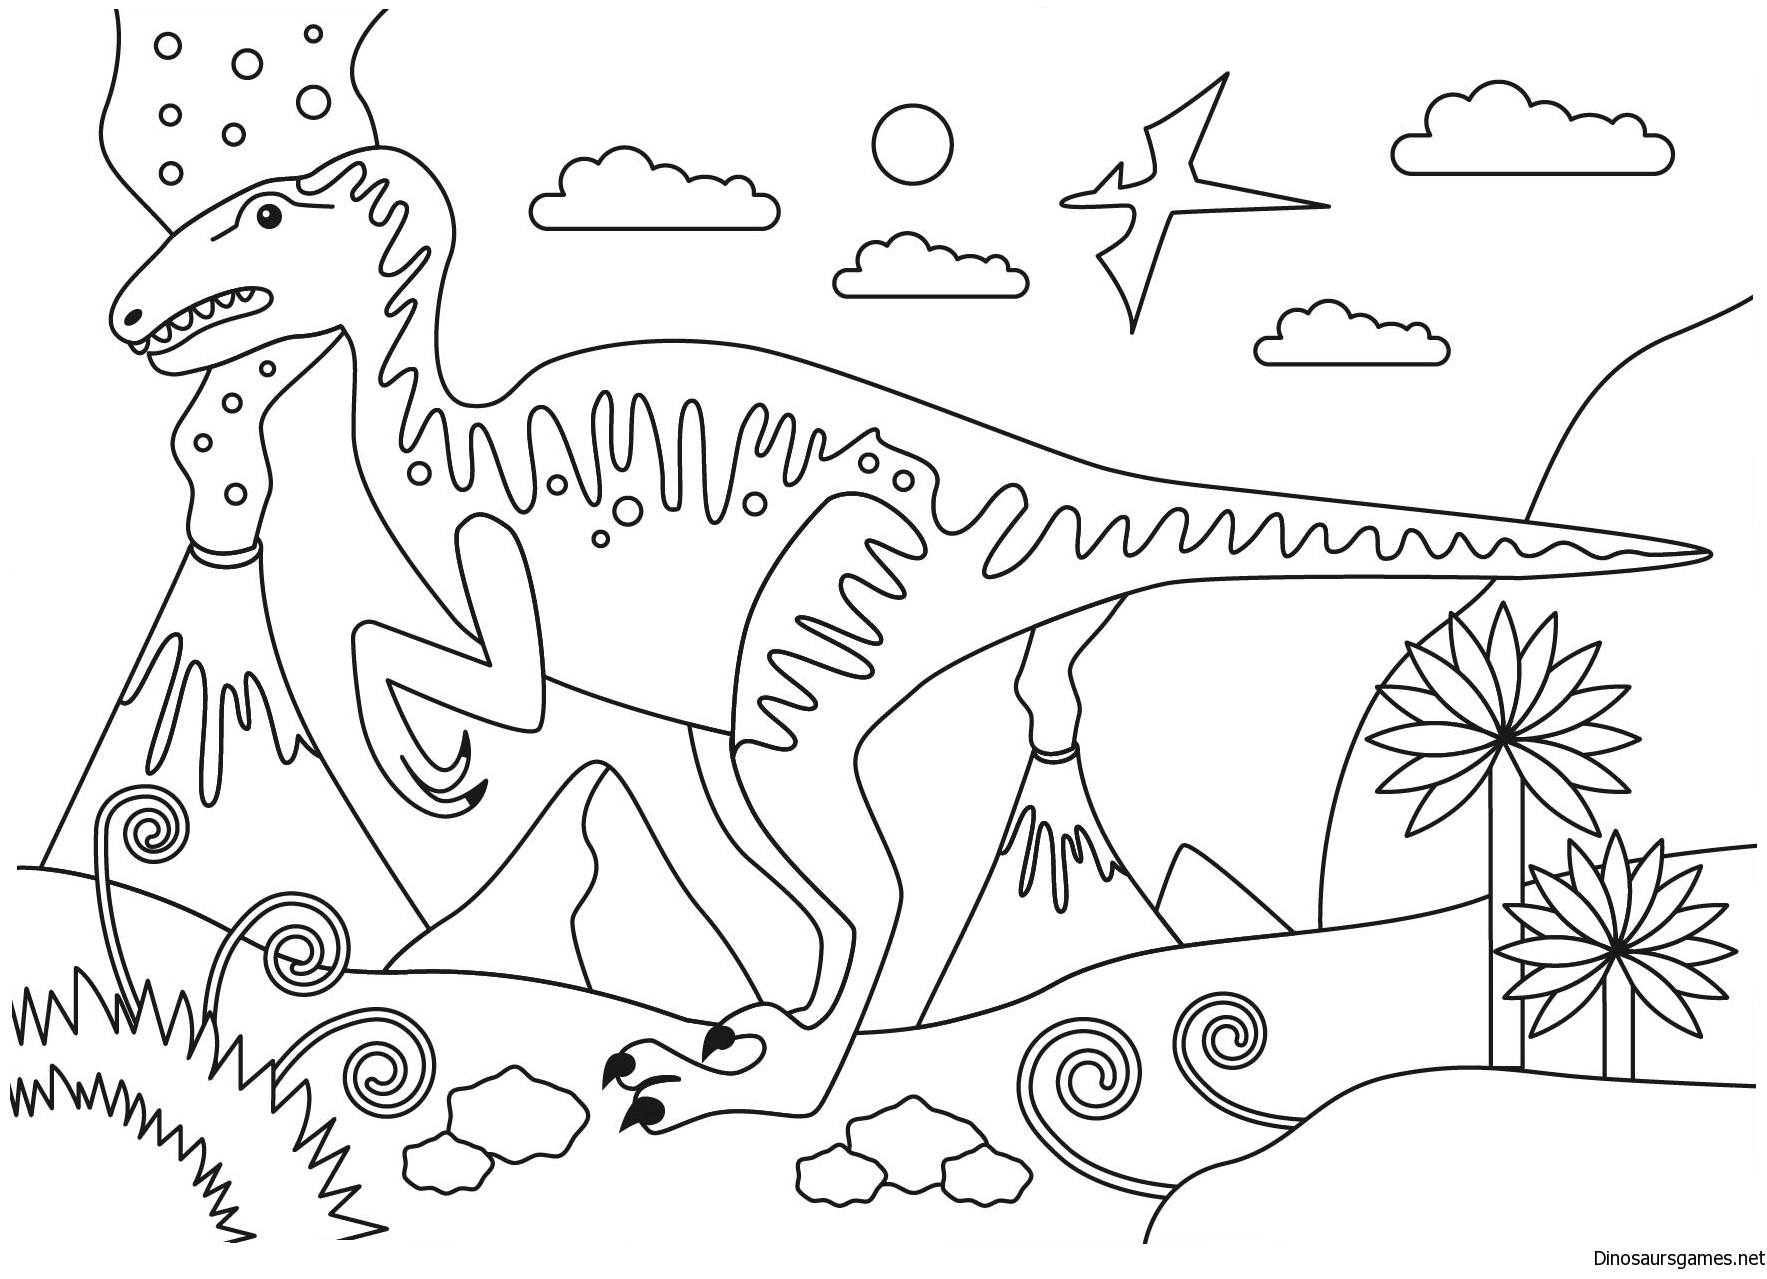 Velociraptor Dinosaur Coloring Page